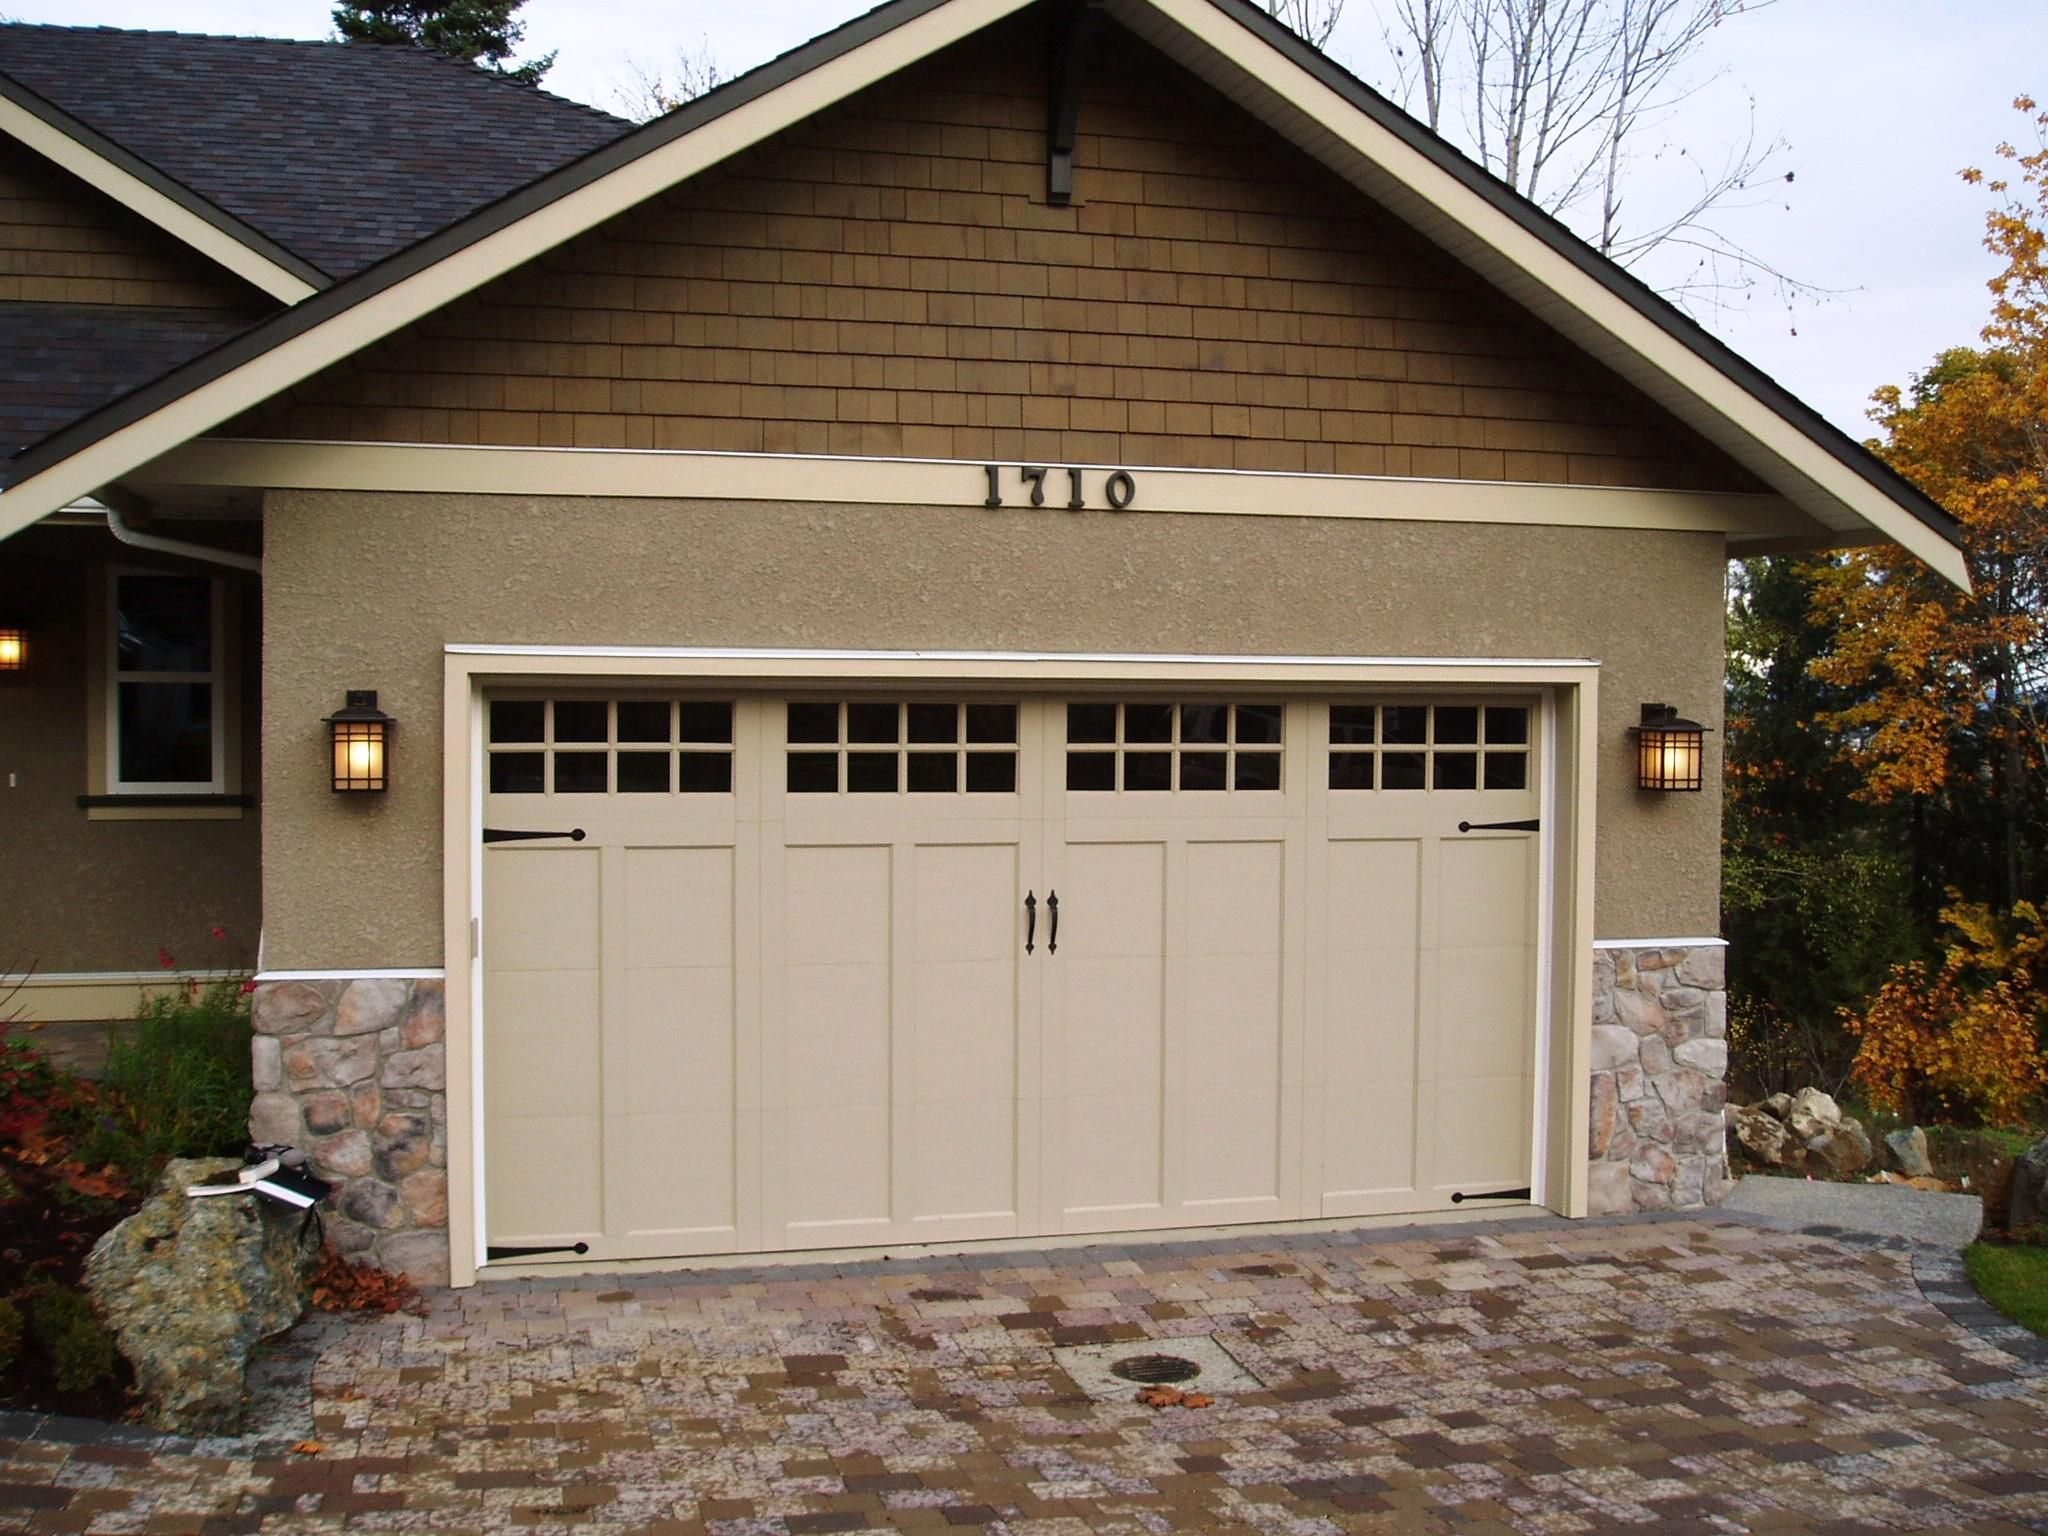 More Ideas Below Garagedoors Garage Doors Modern Garage Doors Opener Makeover Diy Garage Doors Repair Garage Door Design Garage Doors Carriage House Doors